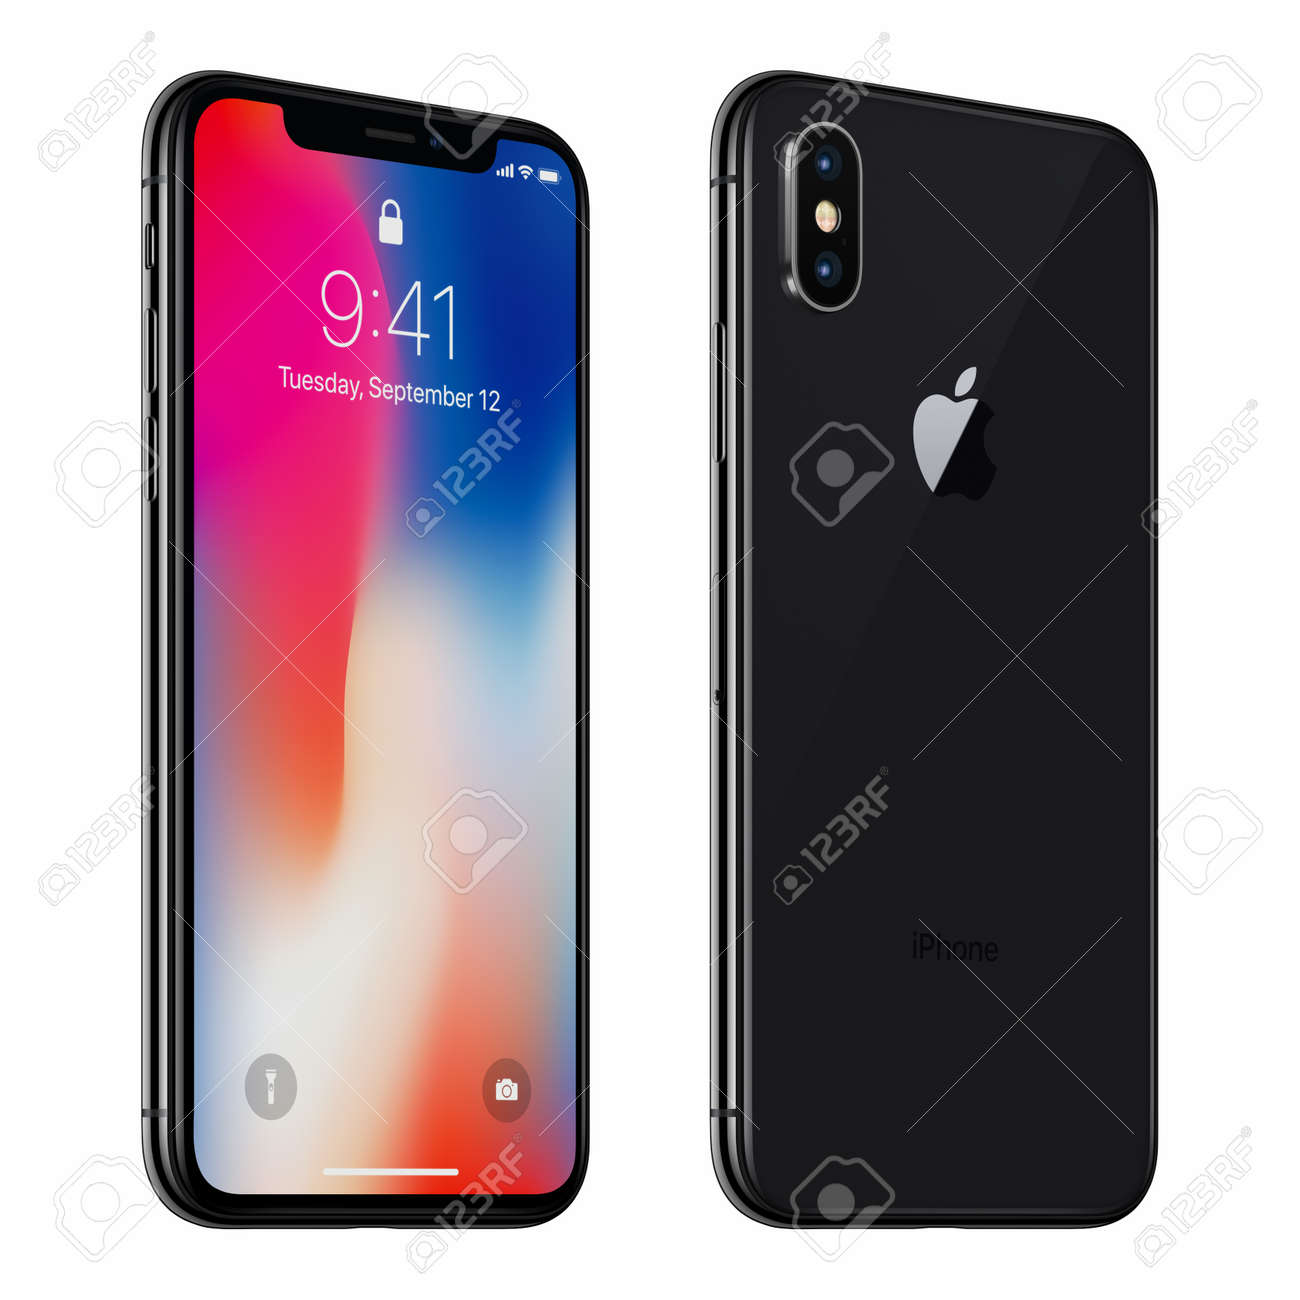 Black rotated Apple iPhone X with iOS 11 lockscreen front side and back side isolated on